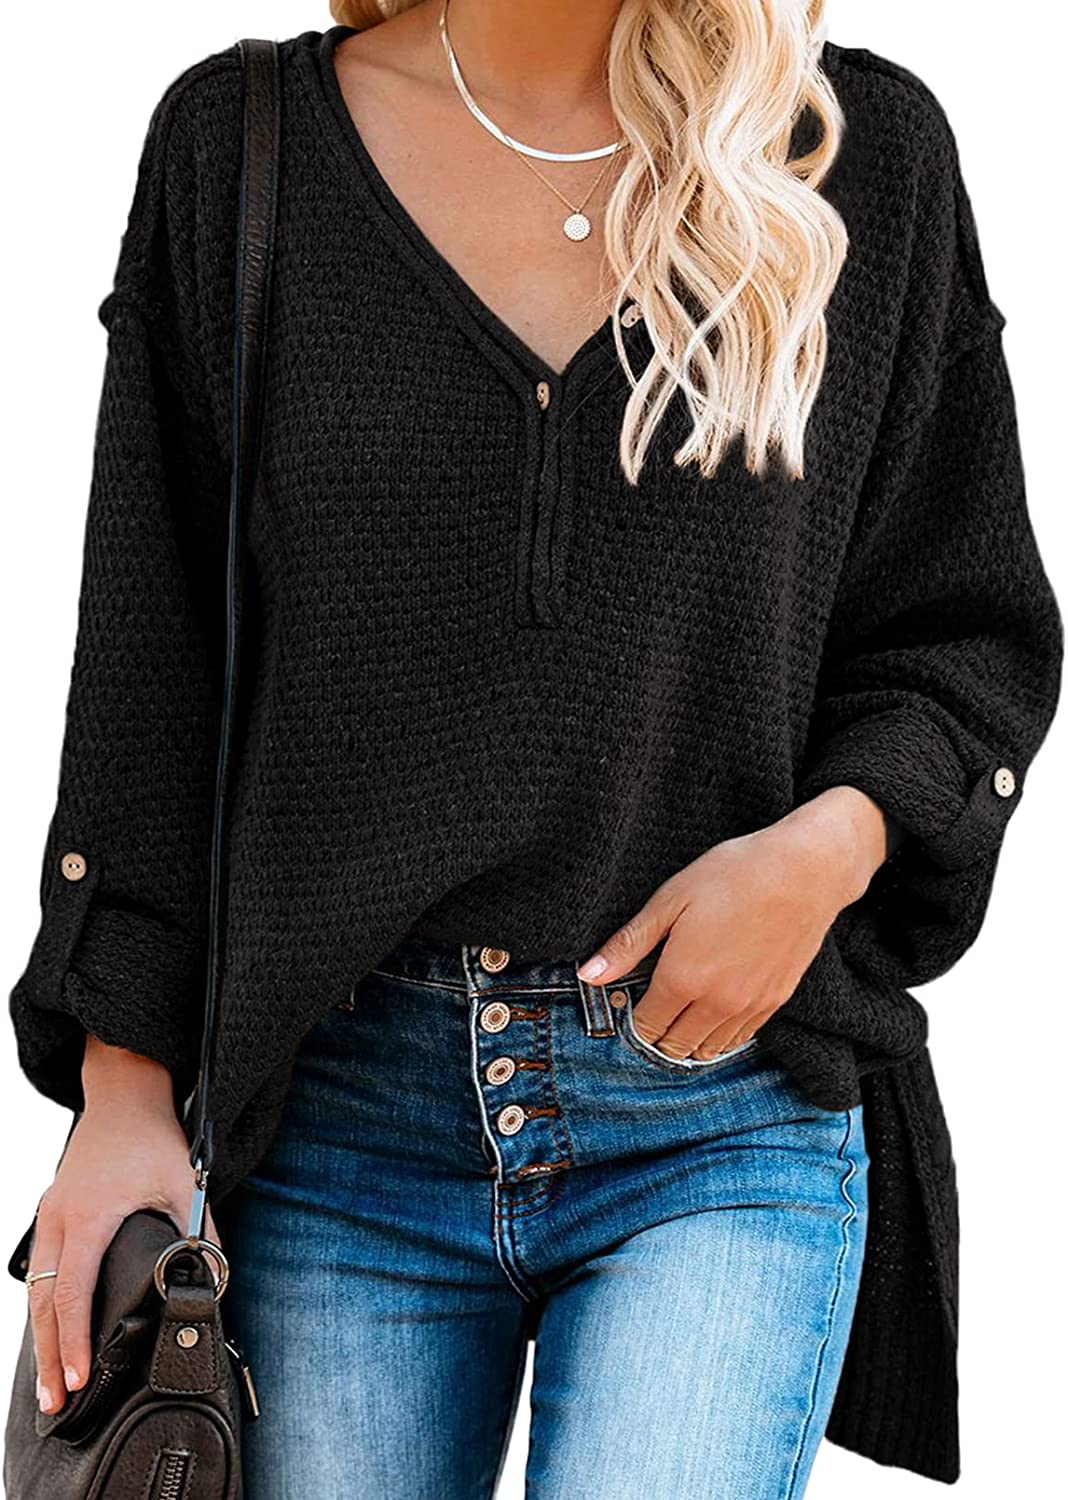 Actloe Sweaters for Women Long Sleeve Tunic Tops Button Front Loose Oversized V Neck Knit Pullover Jumper